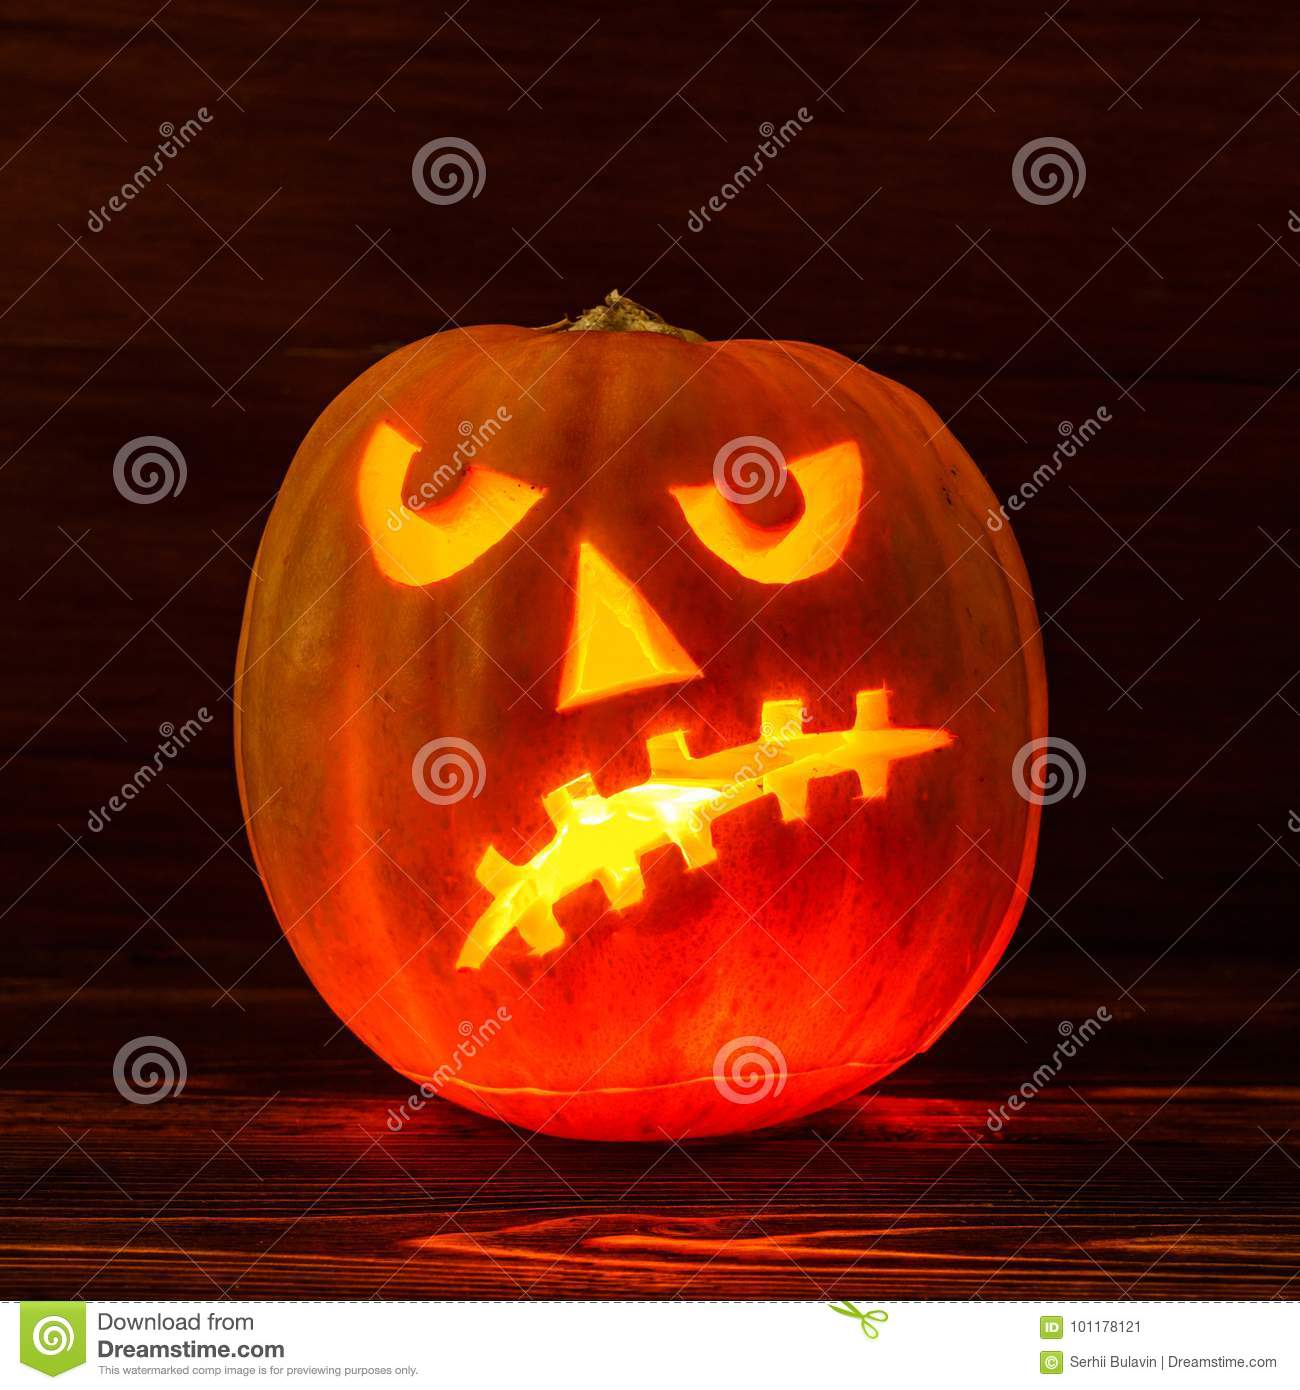 scary halloween pumpkin on wooden background scary glowing face rh dreamstime com